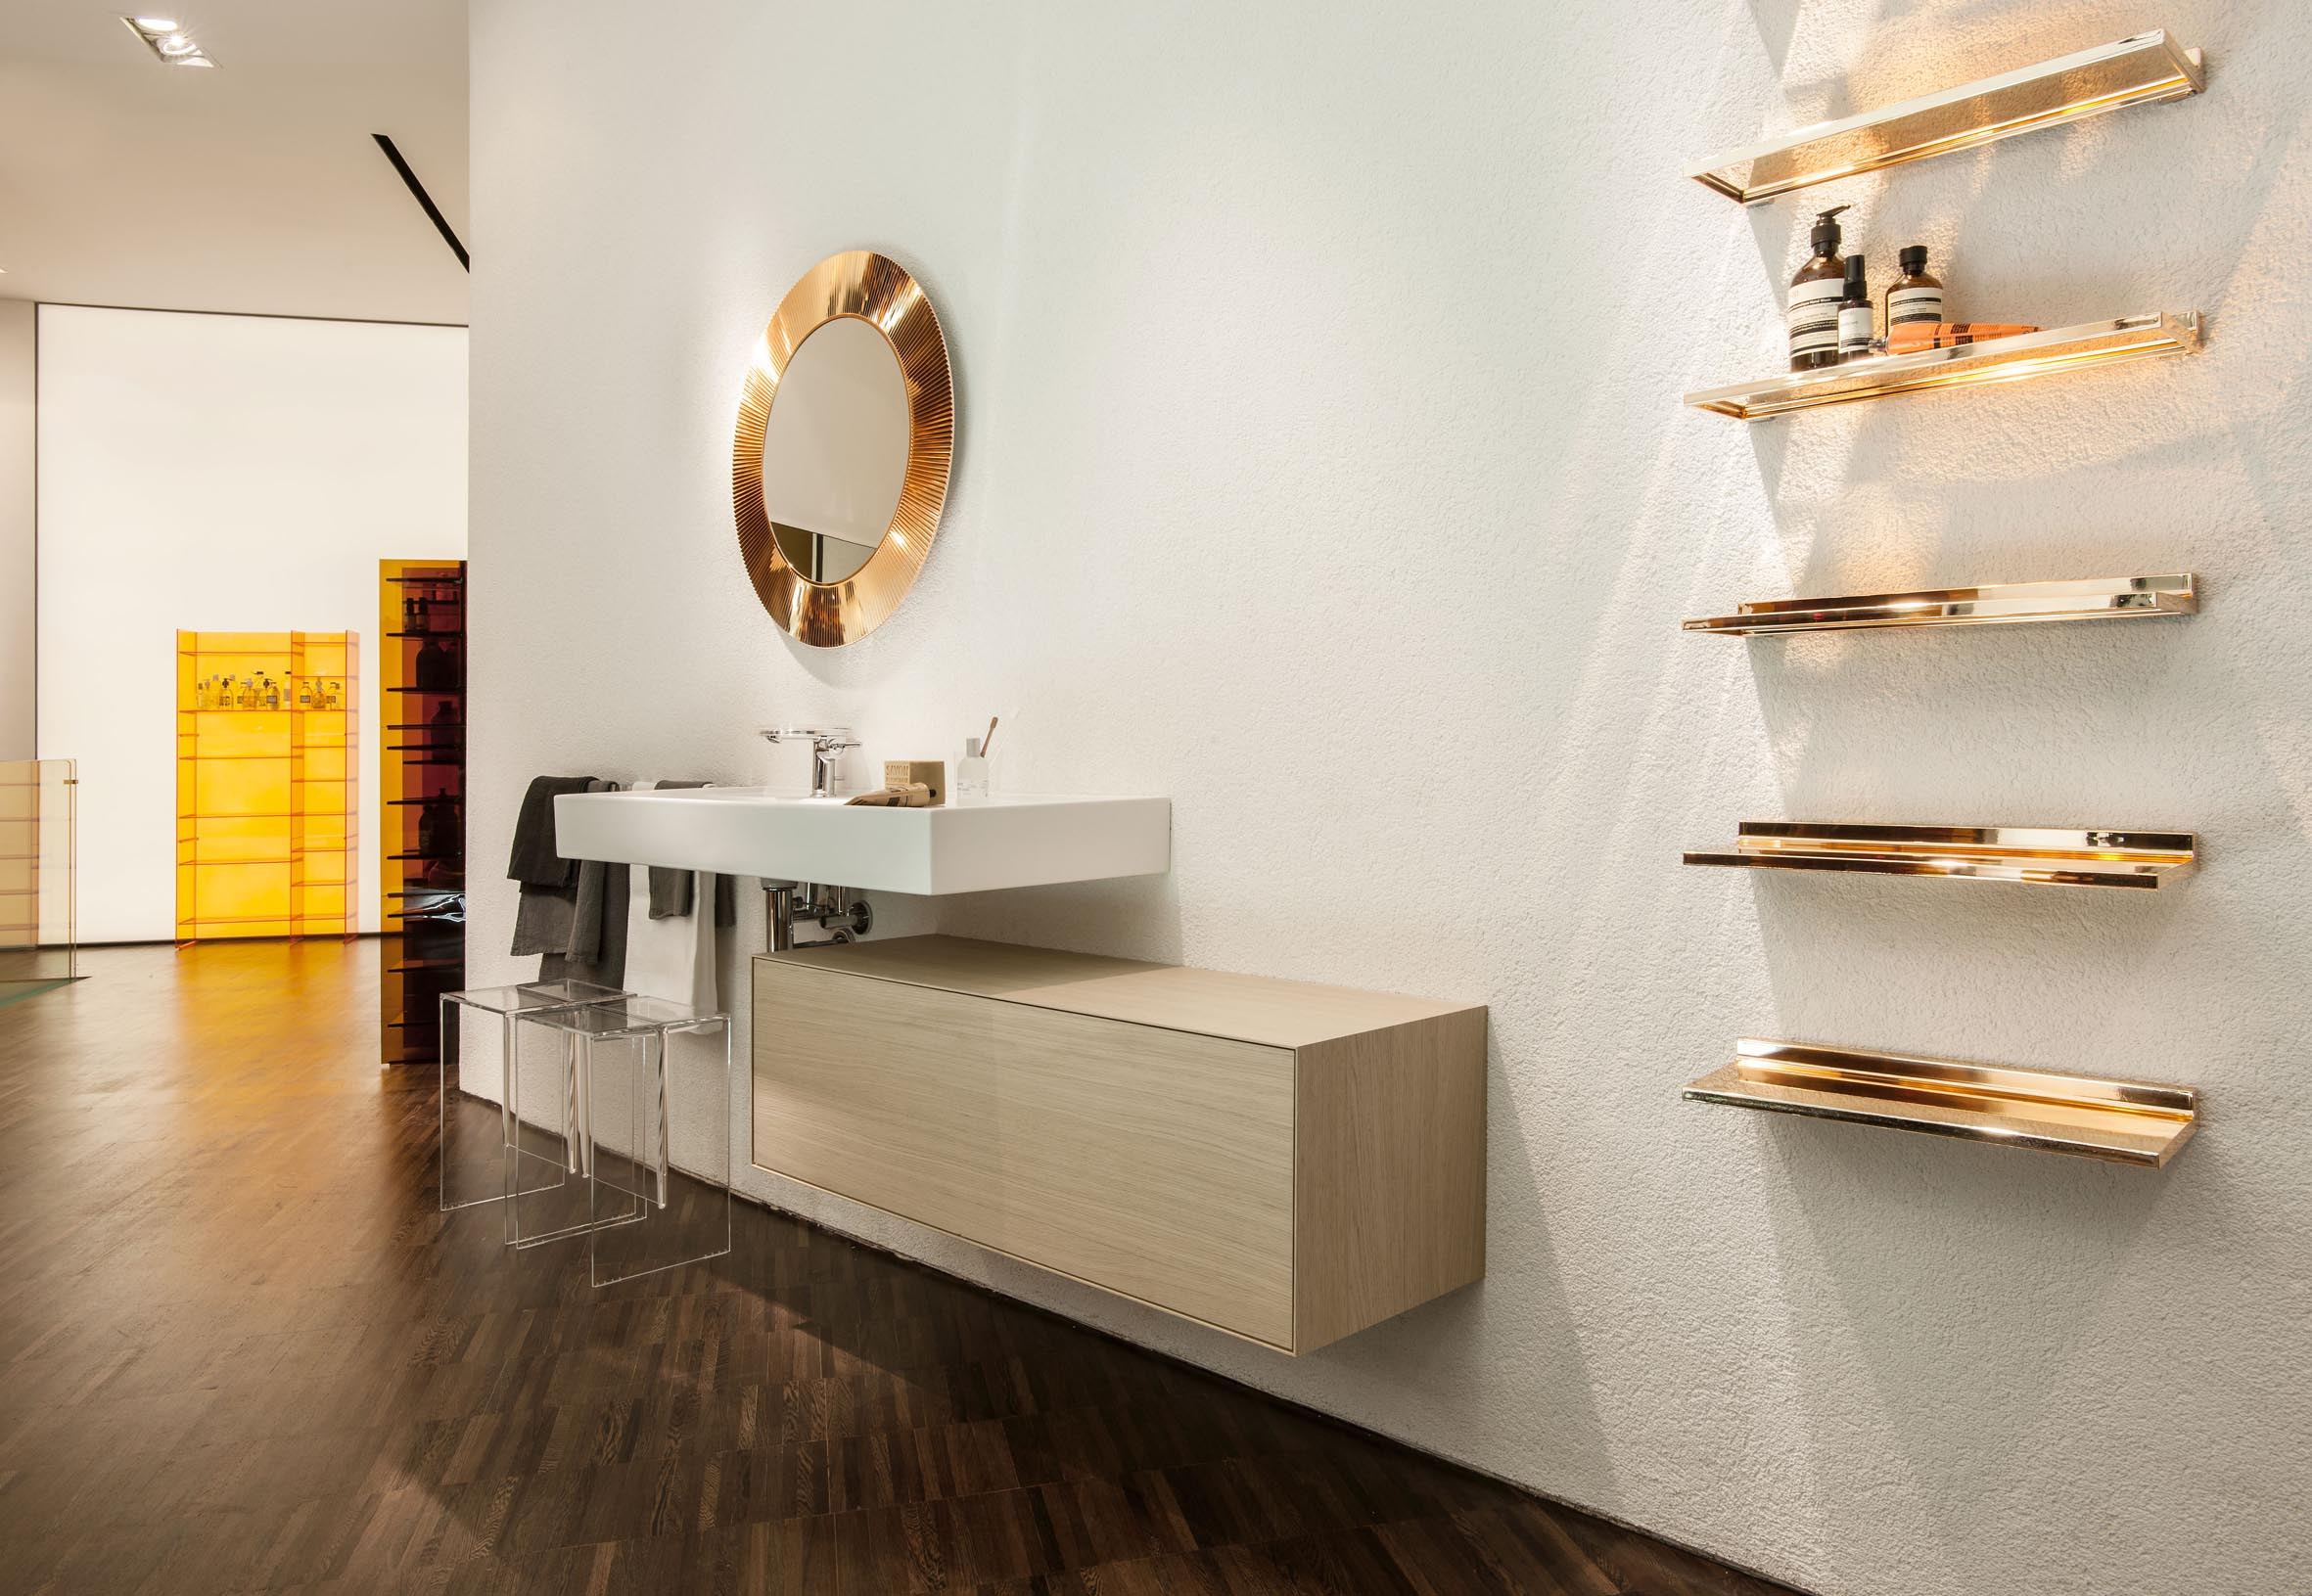 kartell by laufen store now open in milan the kitchen and bathroom blog. Black Bedroom Furniture Sets. Home Design Ideas